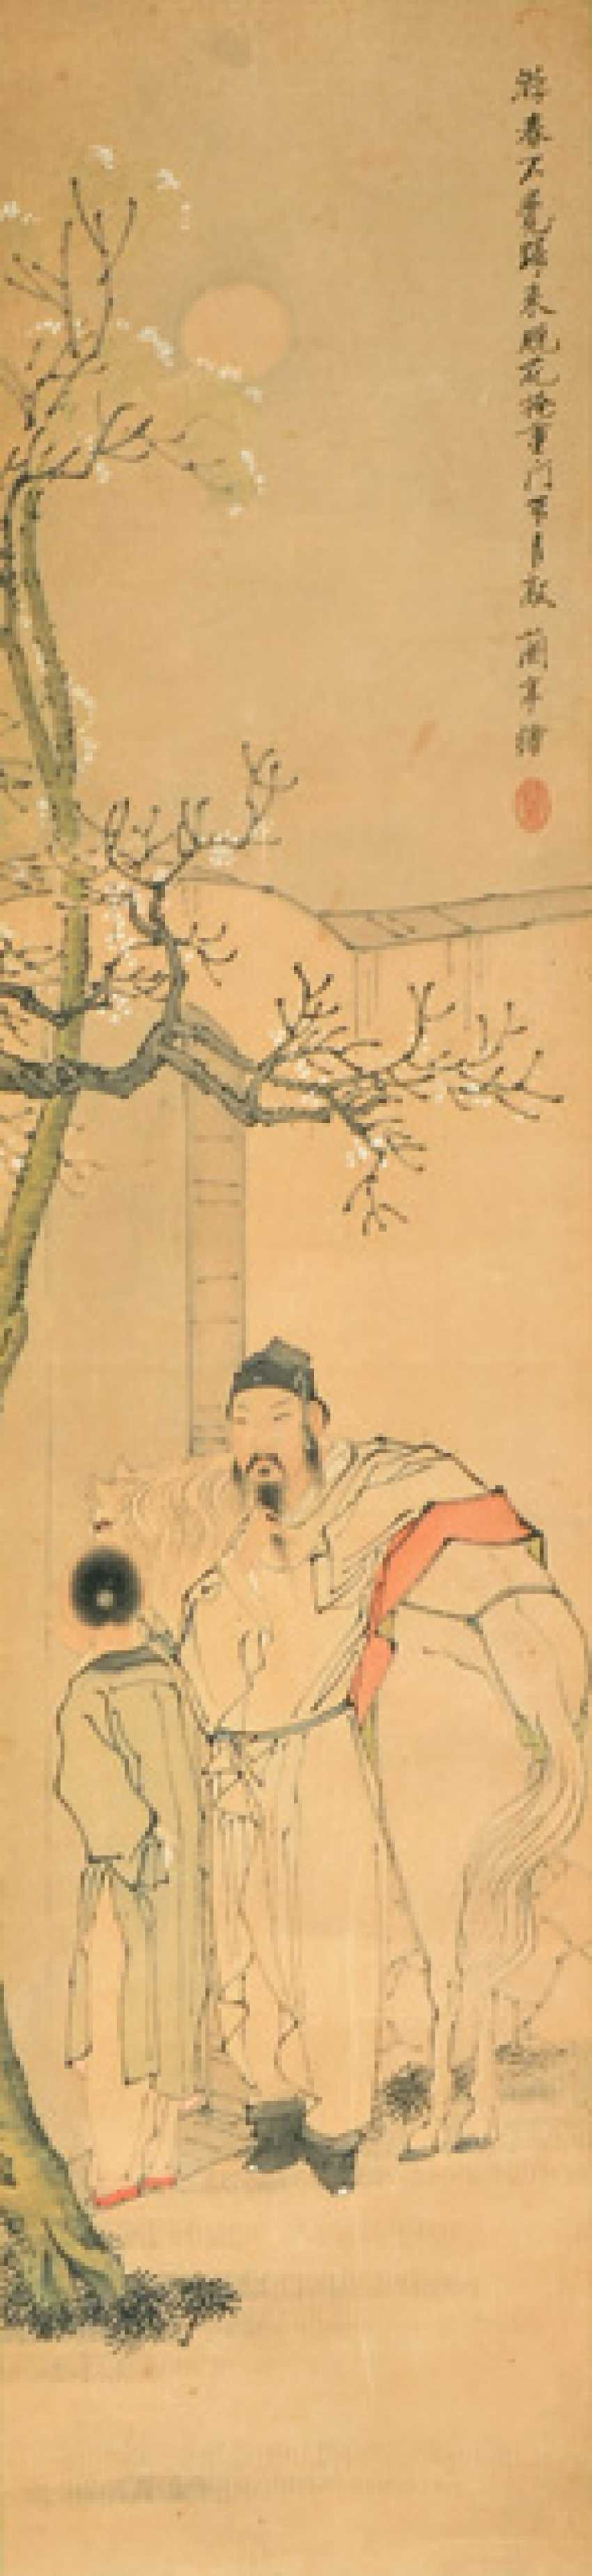 Painting with two figures and a horse under a blooming tree - photo 1